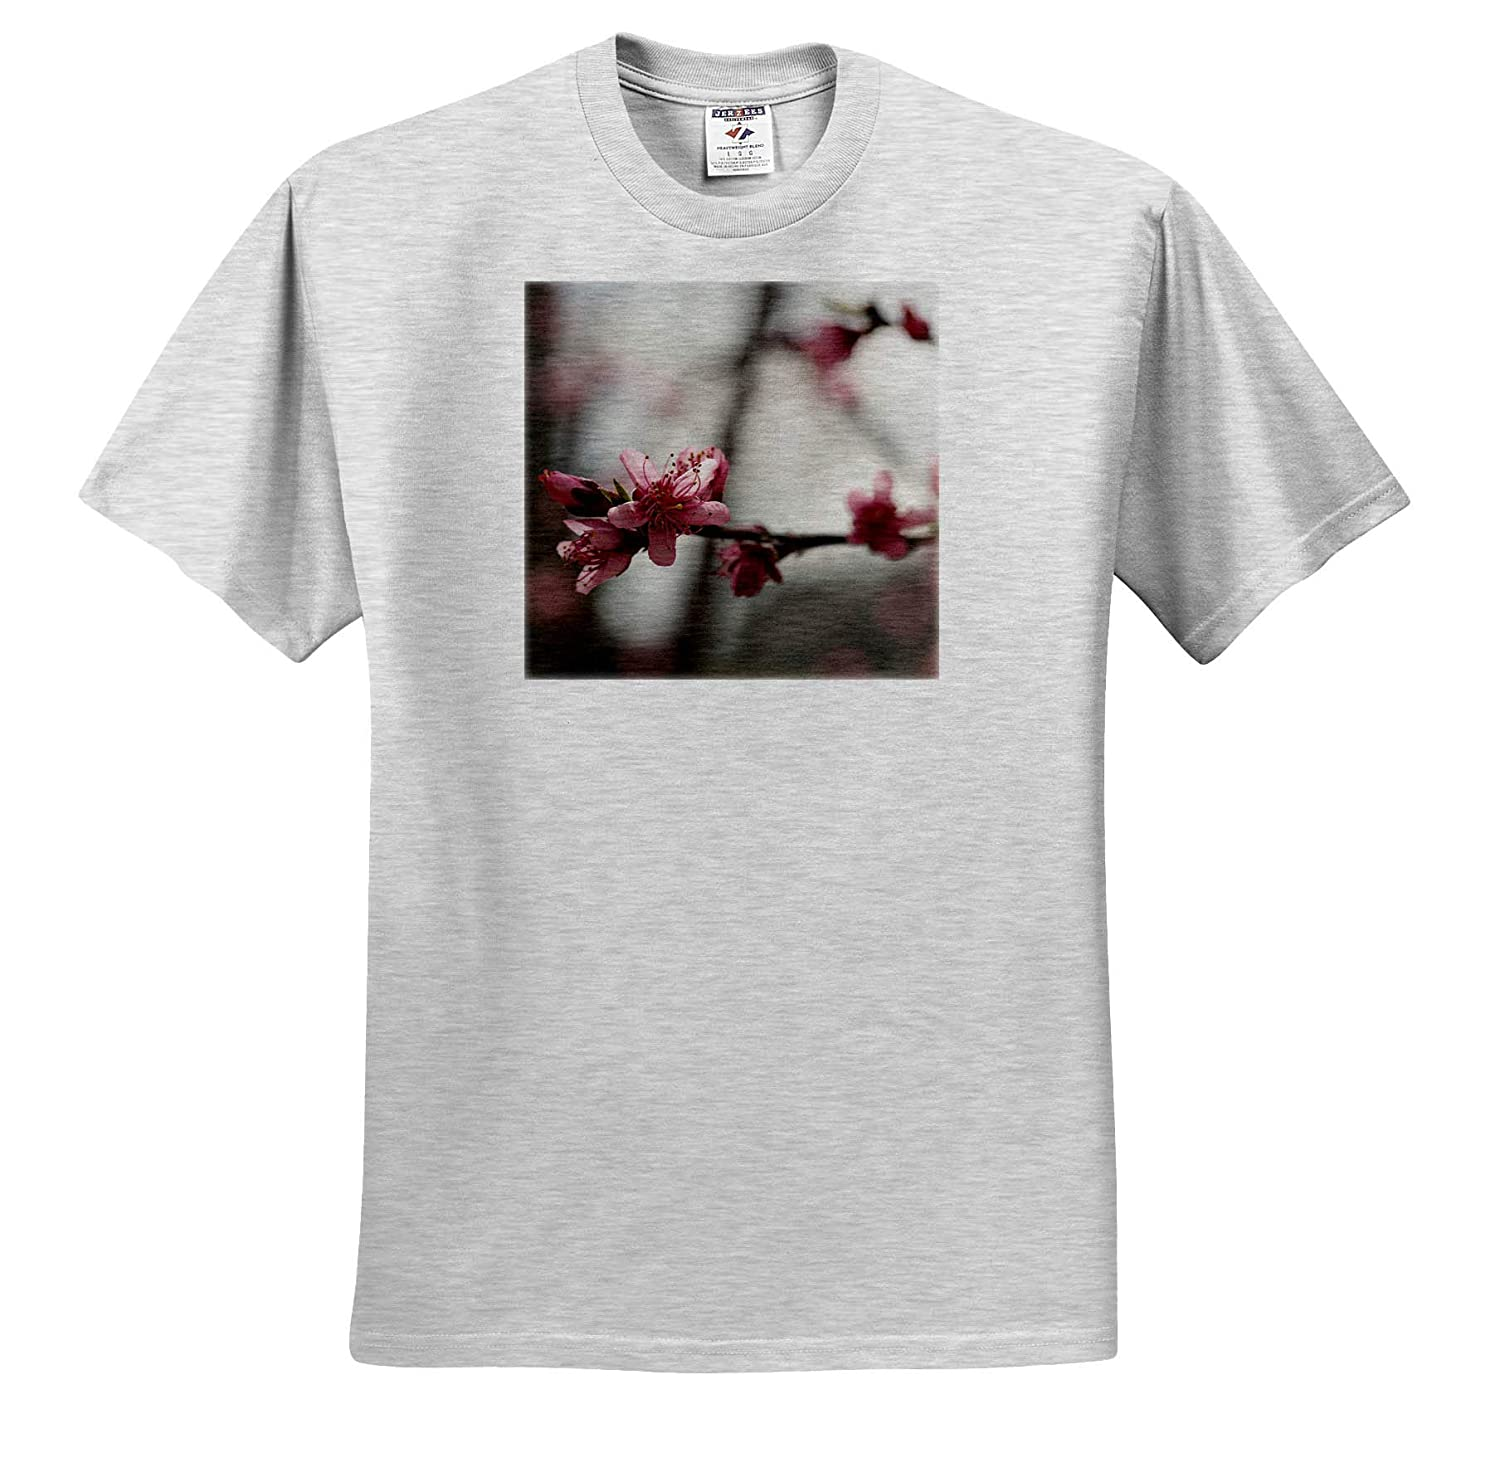 Photograph of Peach Tree Blossoms in Bloom Flowers - T-Shirts 3dRose Stamp City